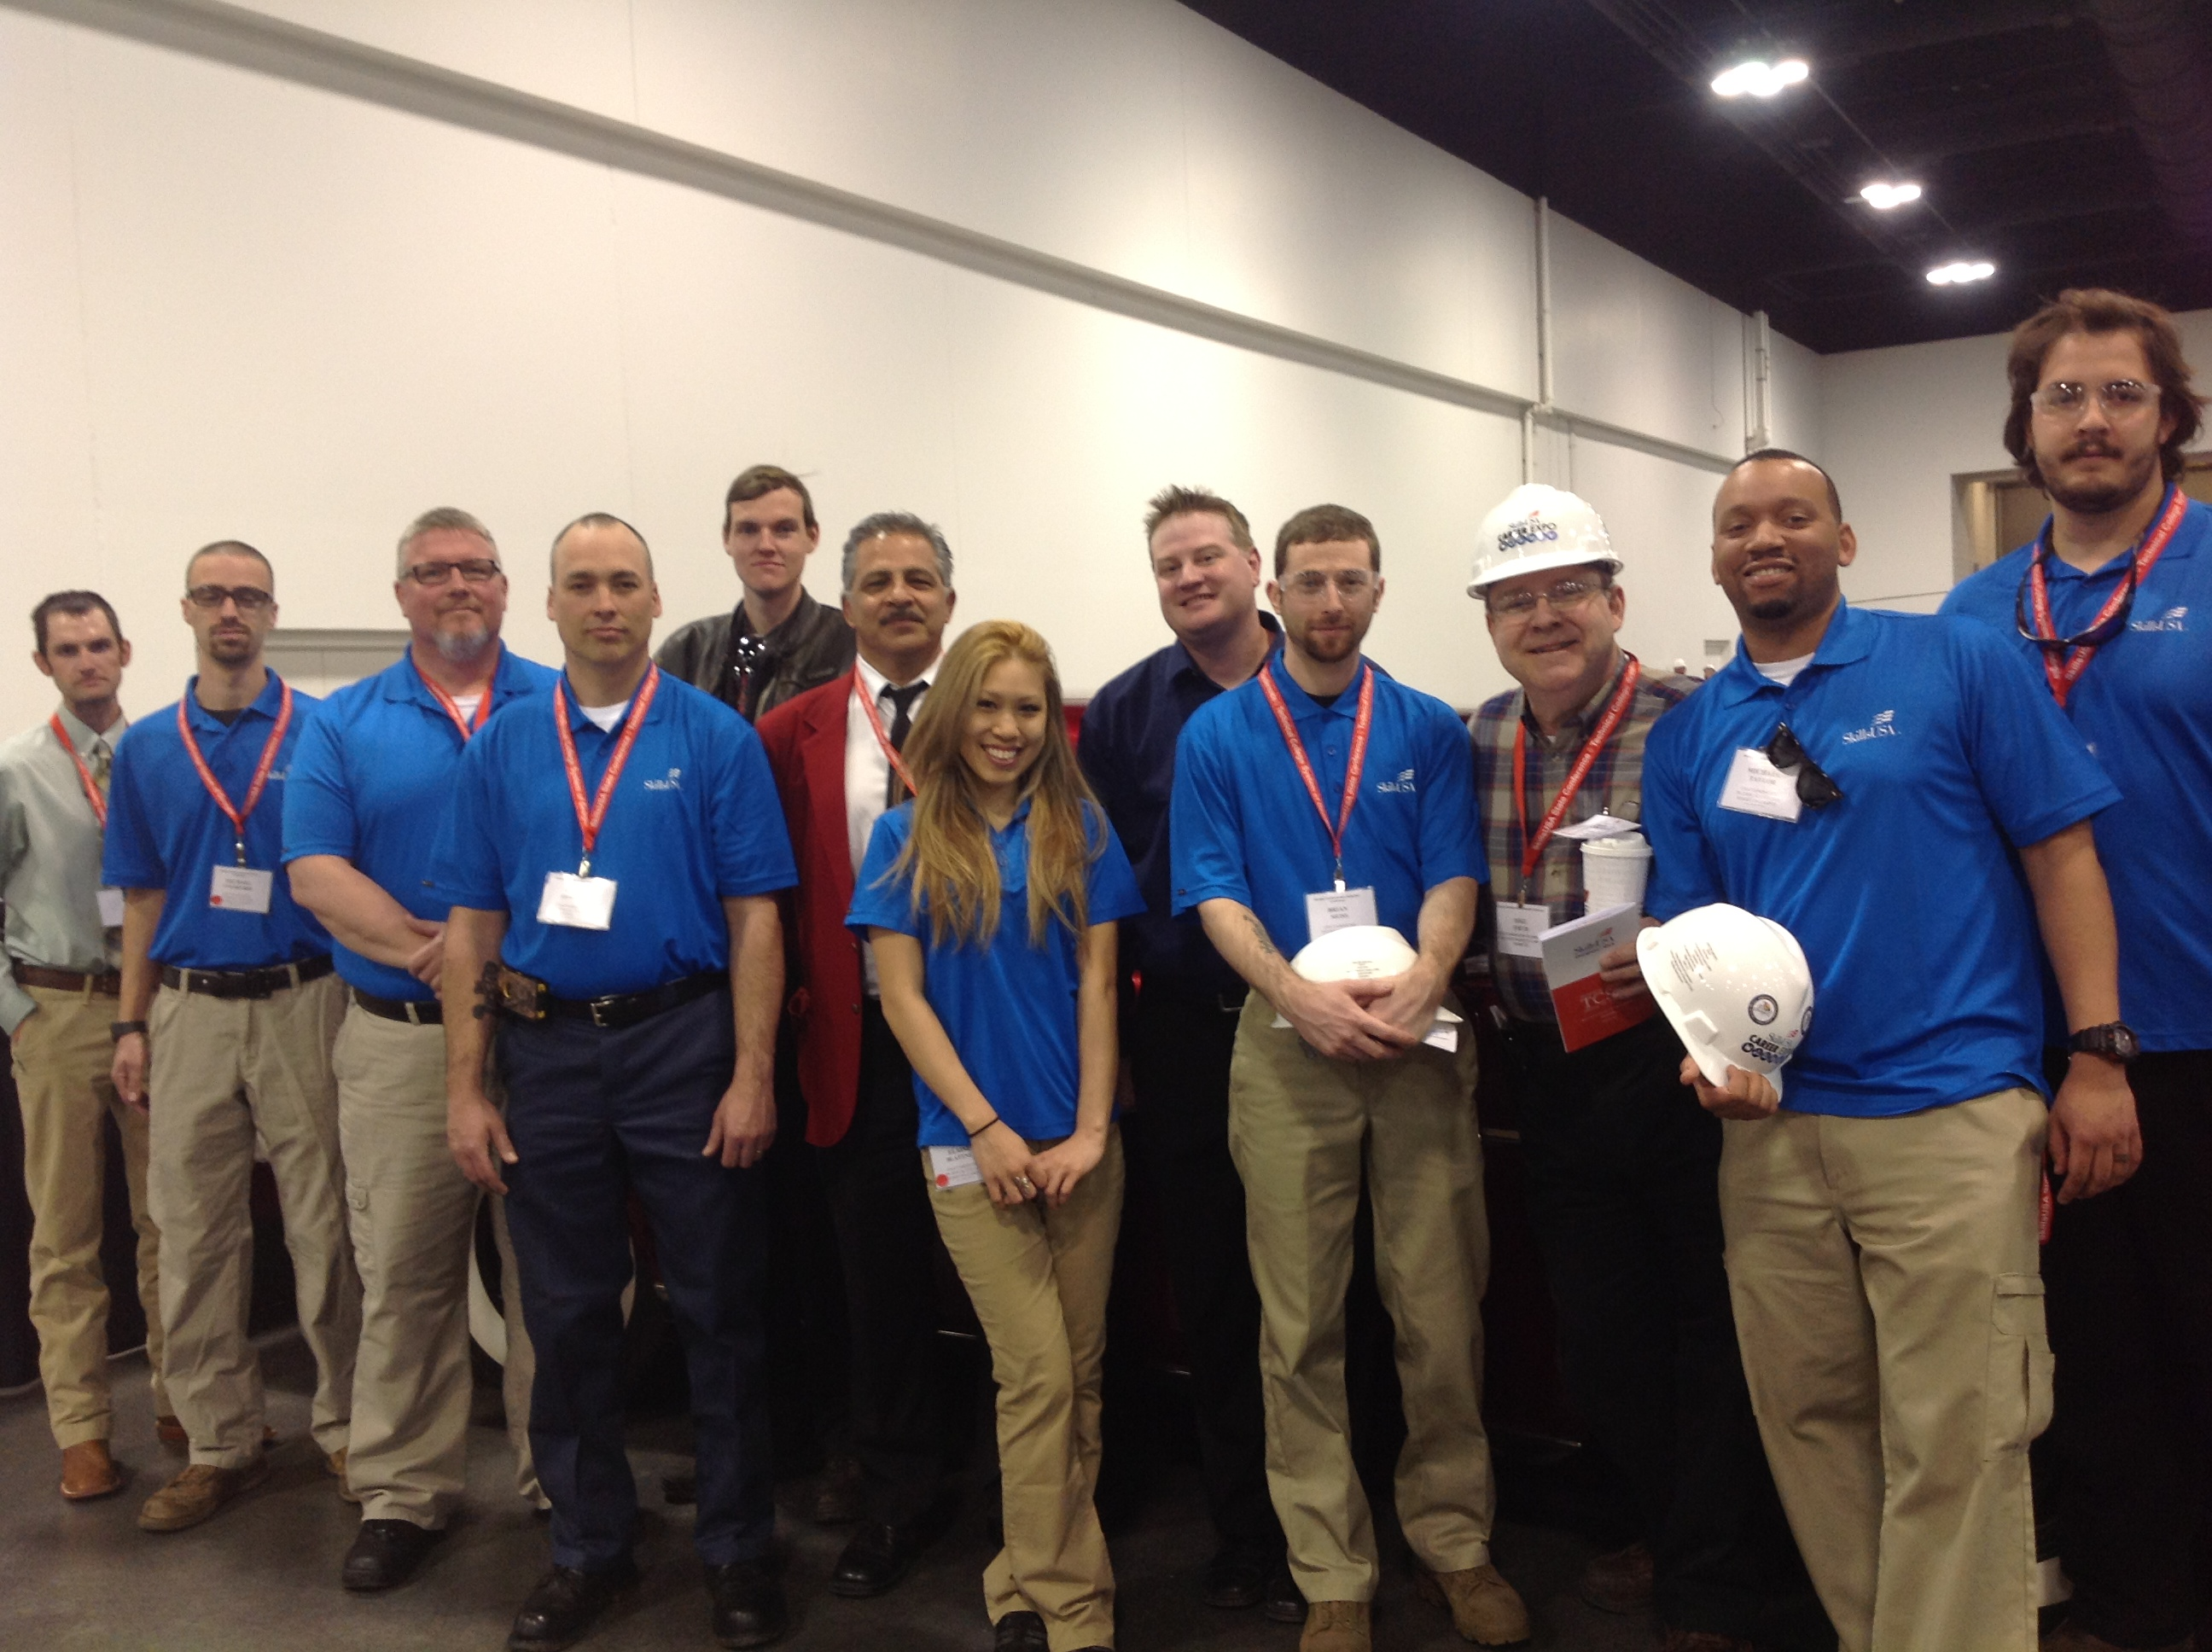 SkillsUSA 2013 Group shot